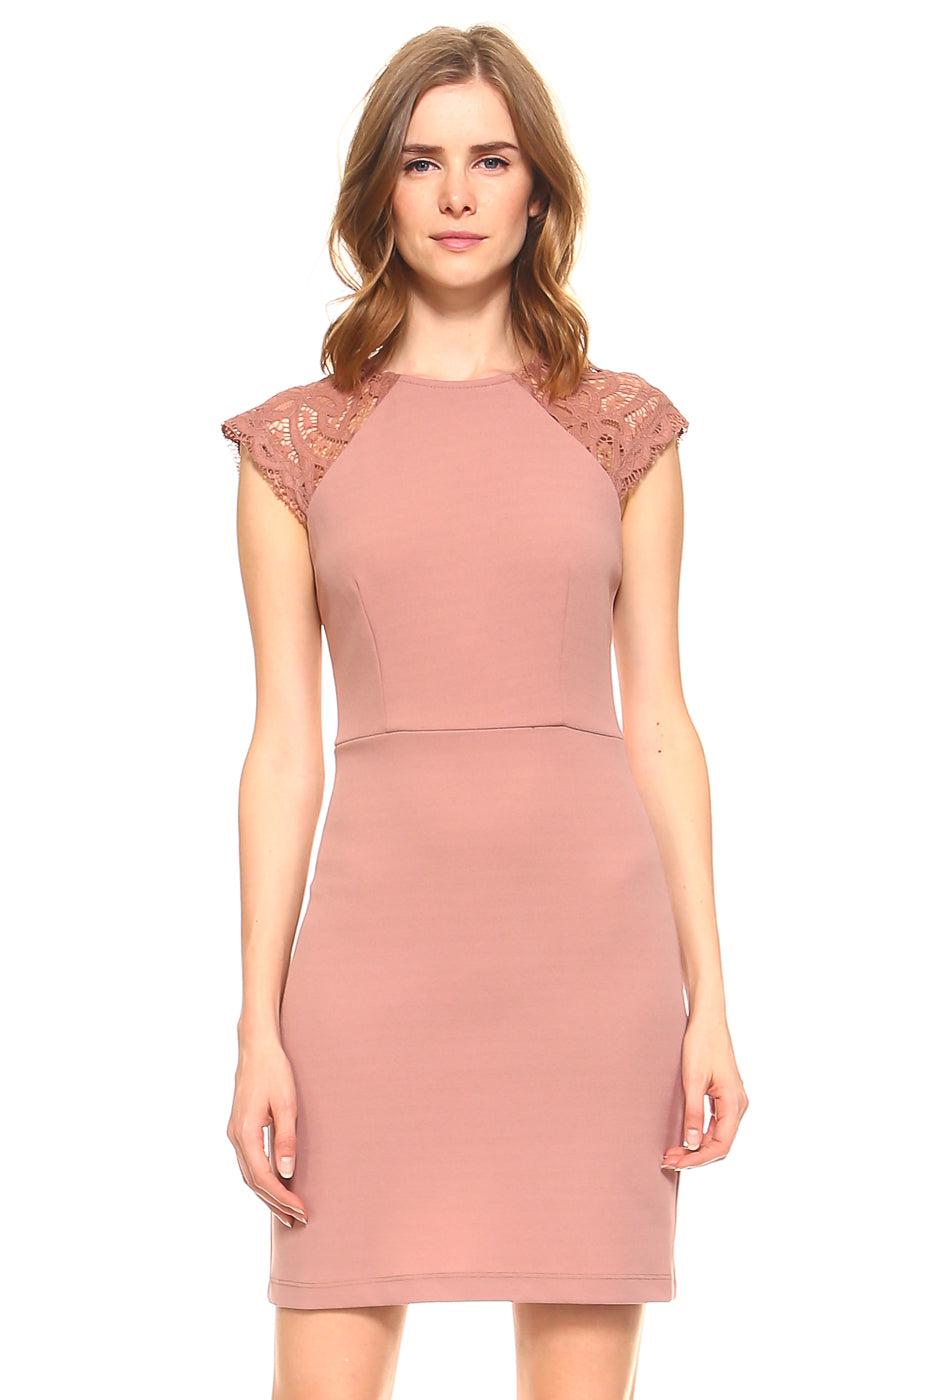 Teeze Me | Cap Sleeve Round Neck Sheath Dress  | Mauve